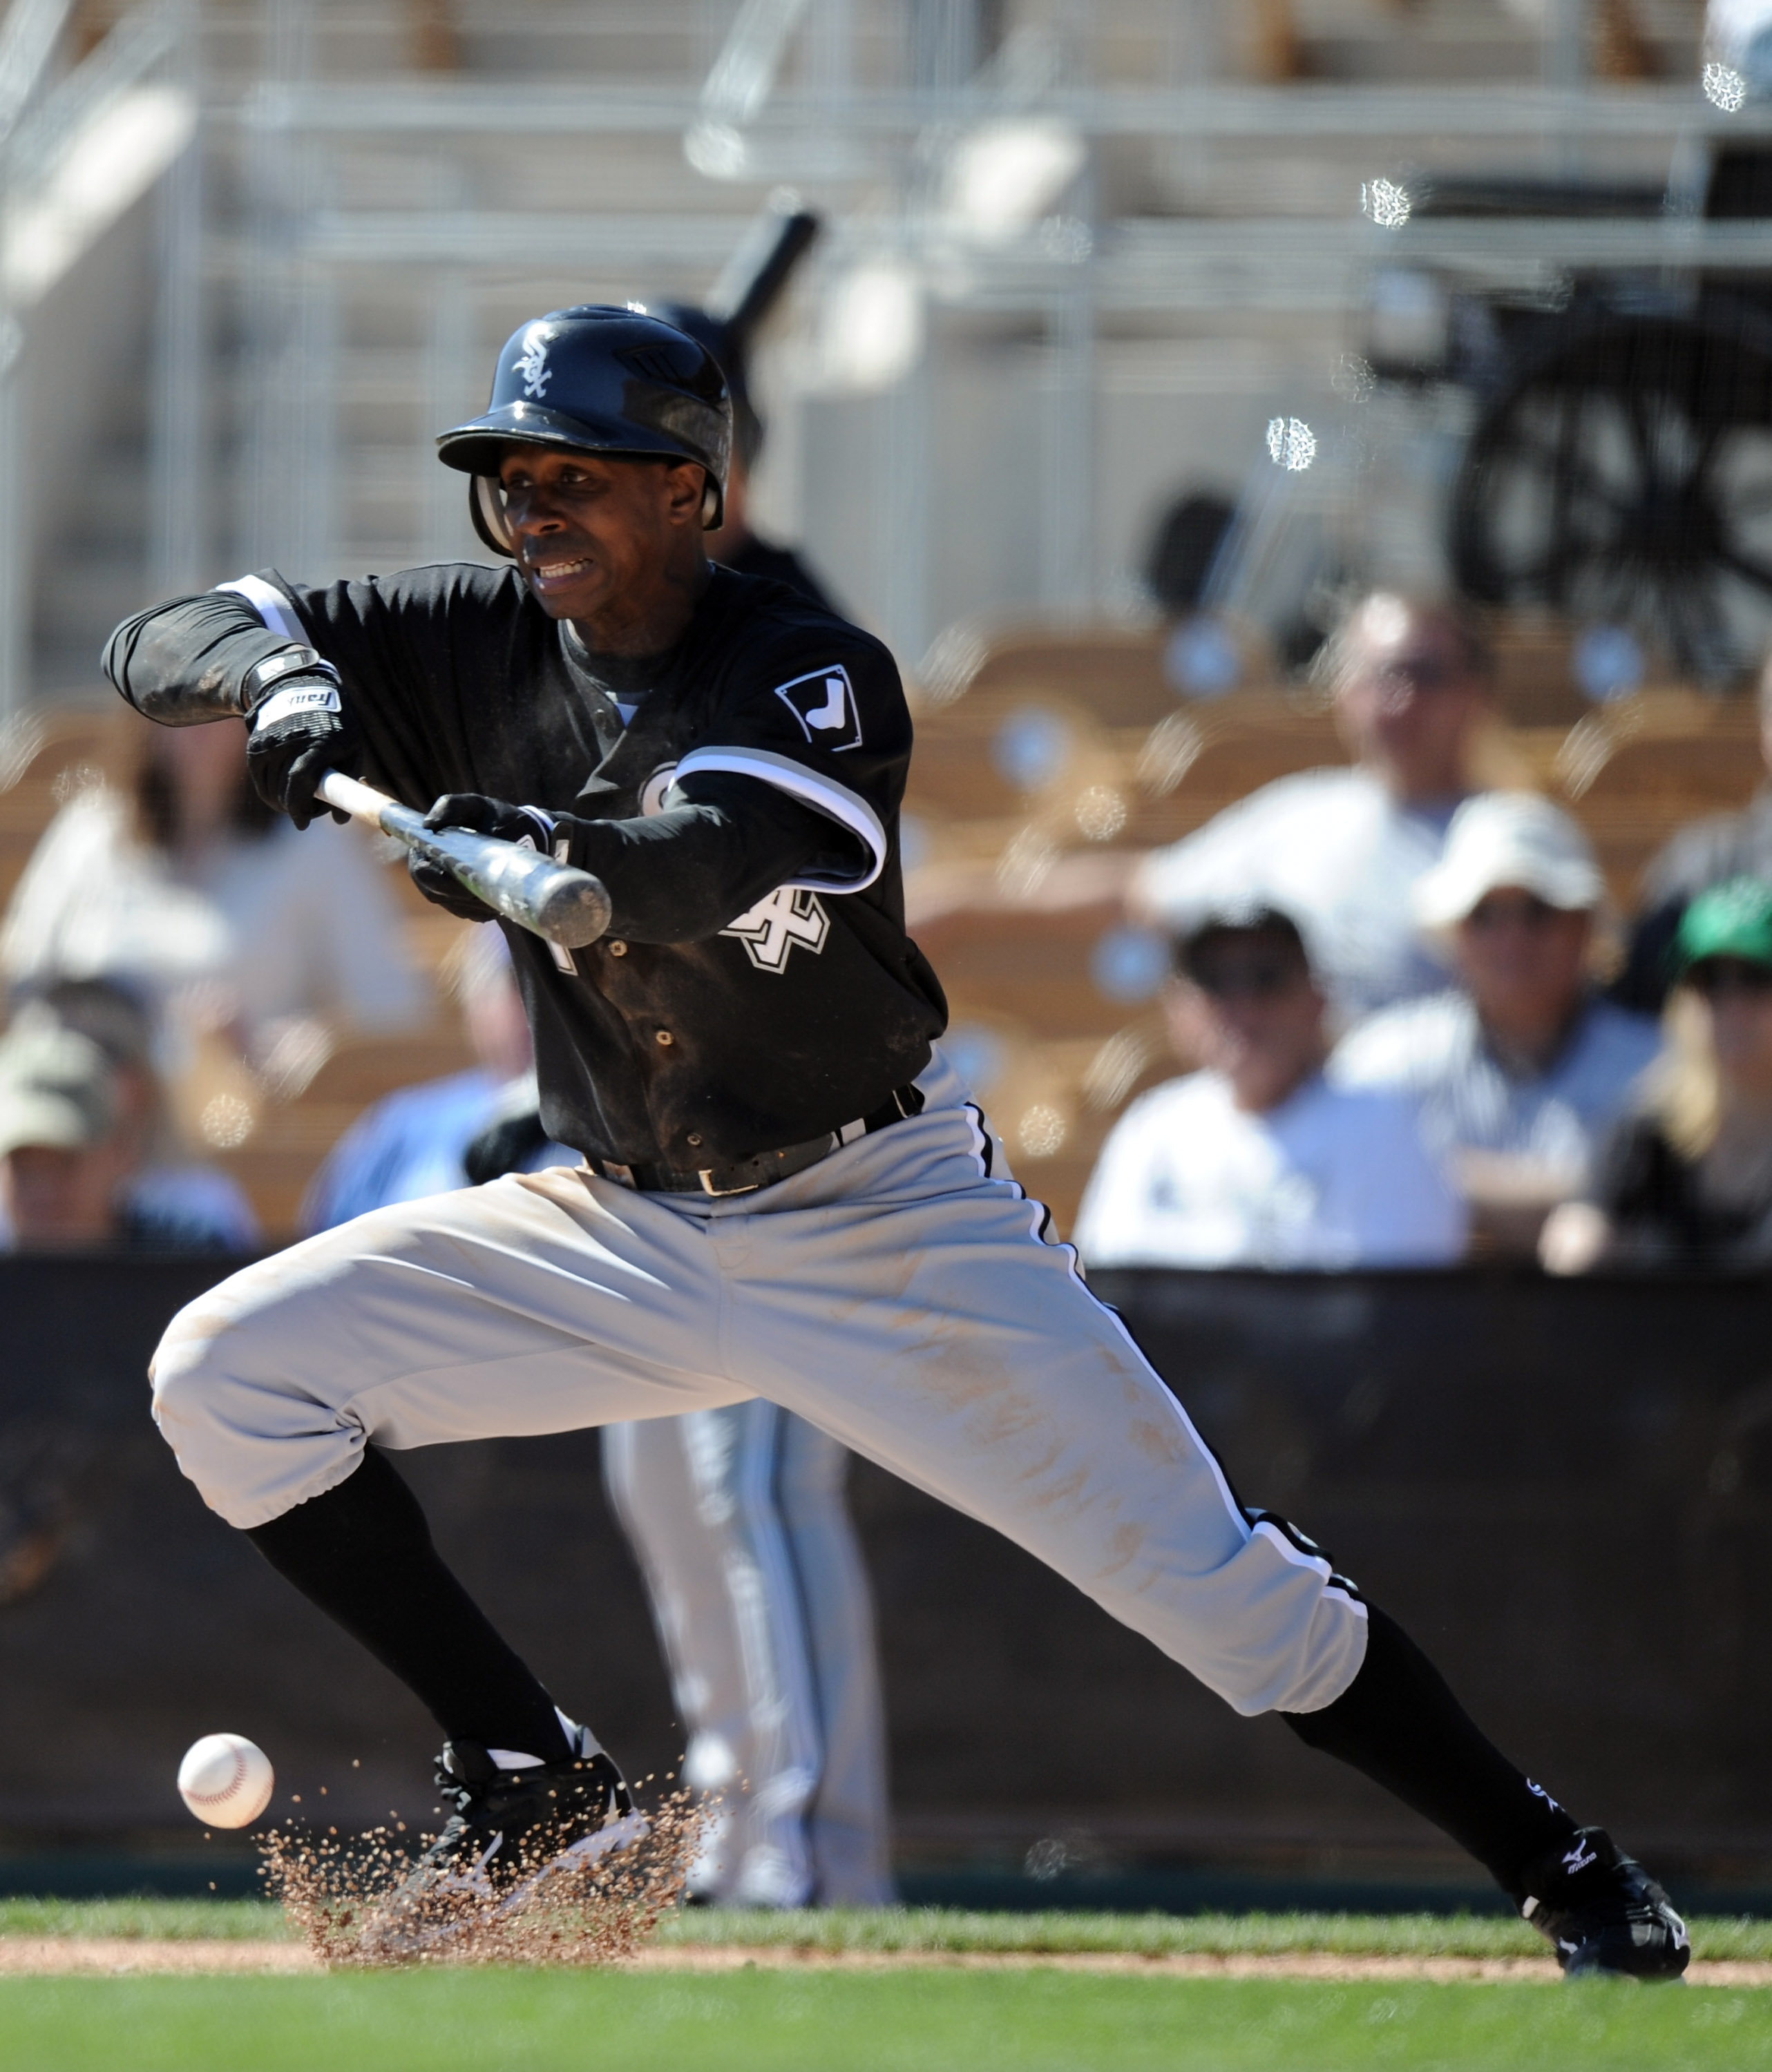 PHOENIX, AZ - FEBRUARY 28:  Juan Pierre #1 of the Chicago White Sox bunts for a single against the Los Angeles Dodgers during spring training at Camelback Ranch on February 28, 2011 in Phoenix, Arizona.  (Photo by Harry How/Getty Images)